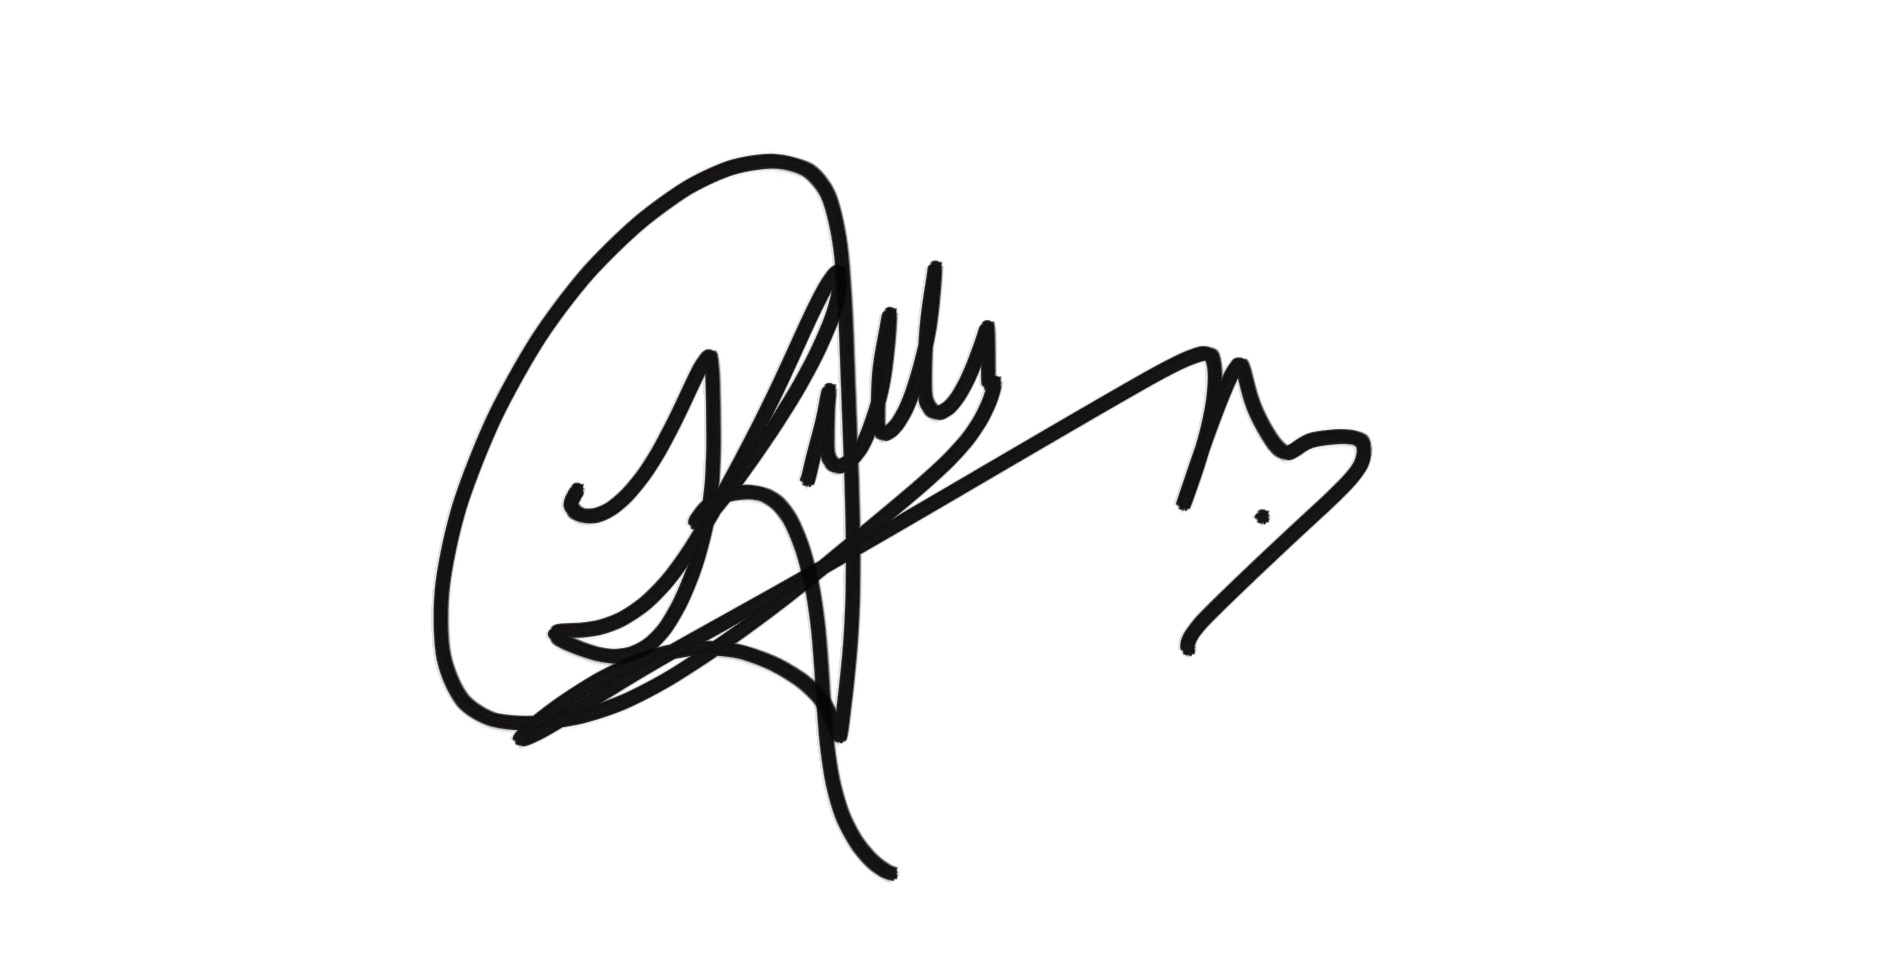 kelly u johnson Signature